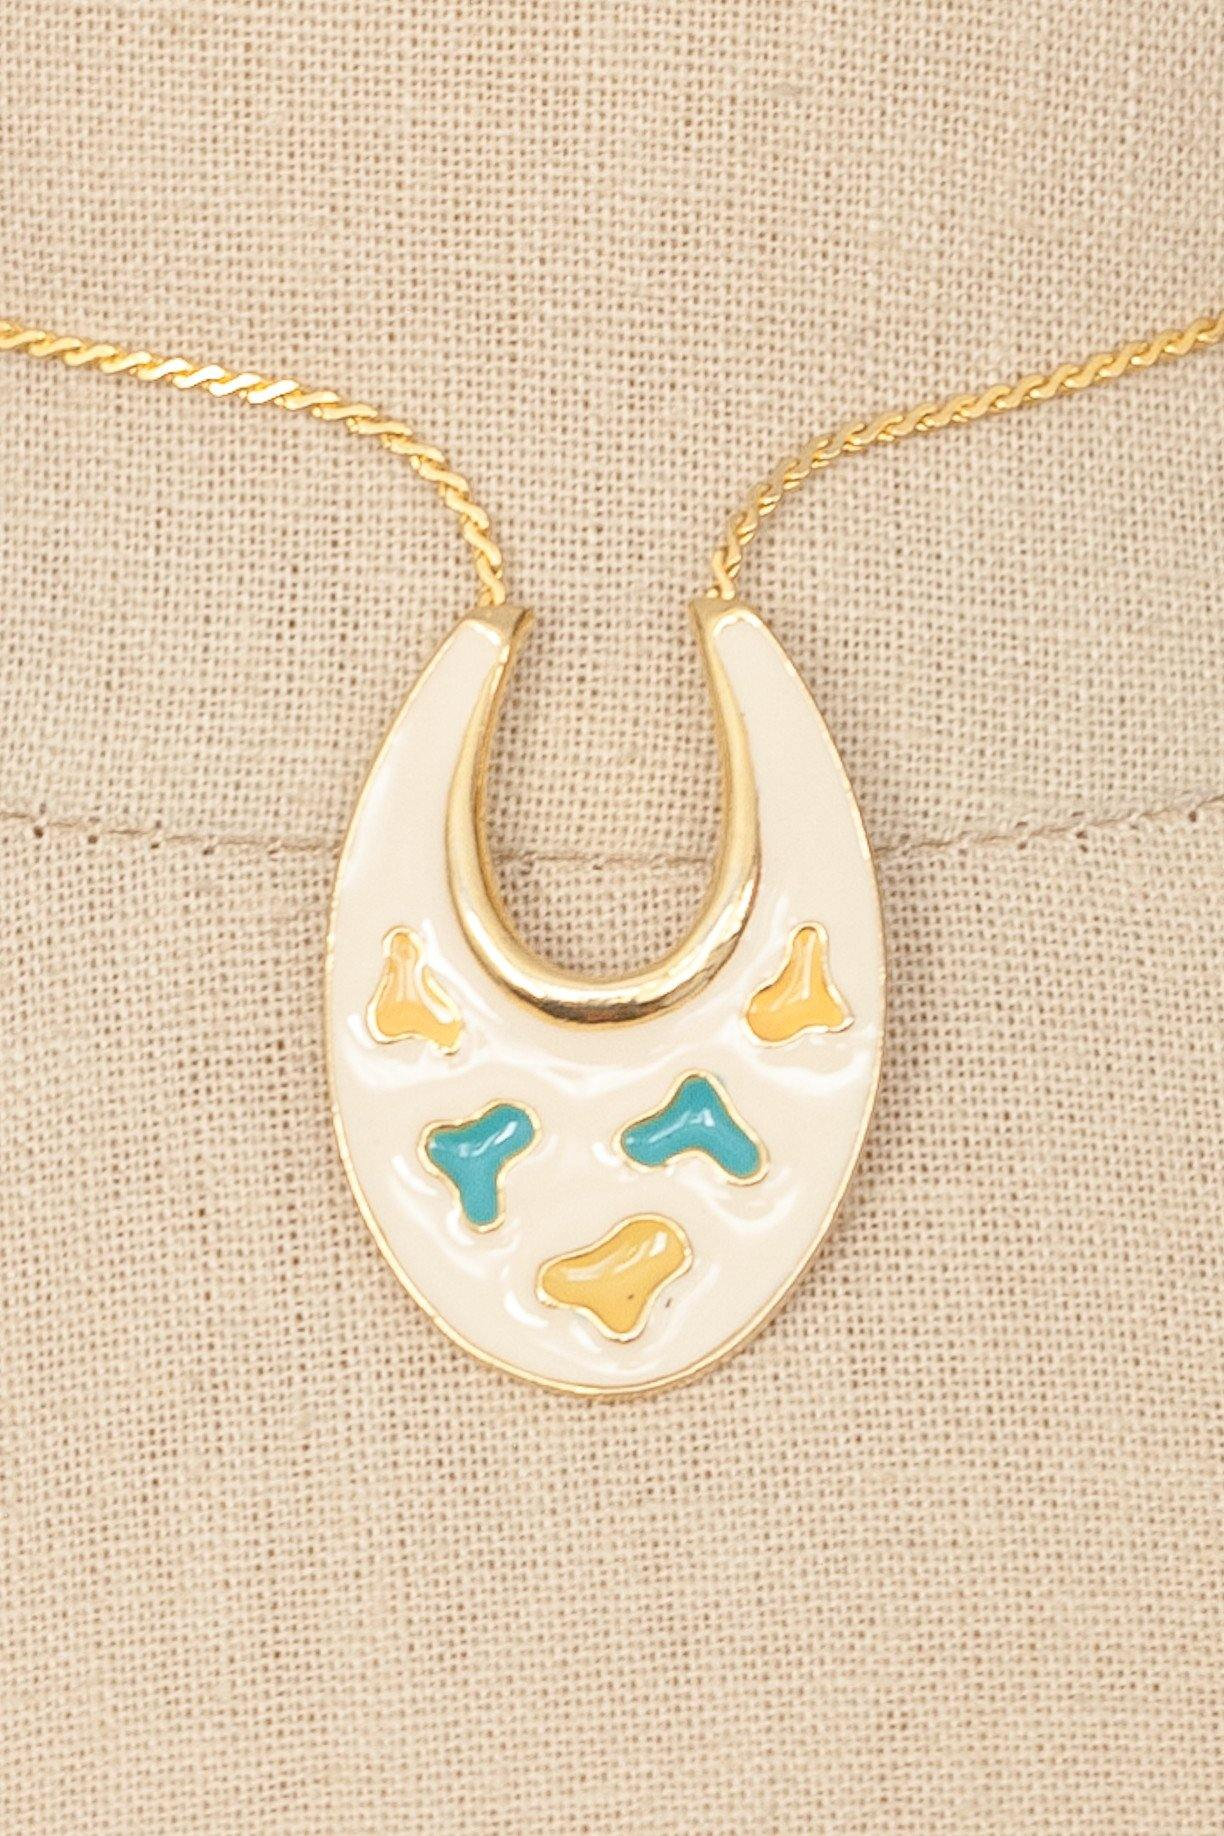 60's__Art__Enameled Pendant Necklace